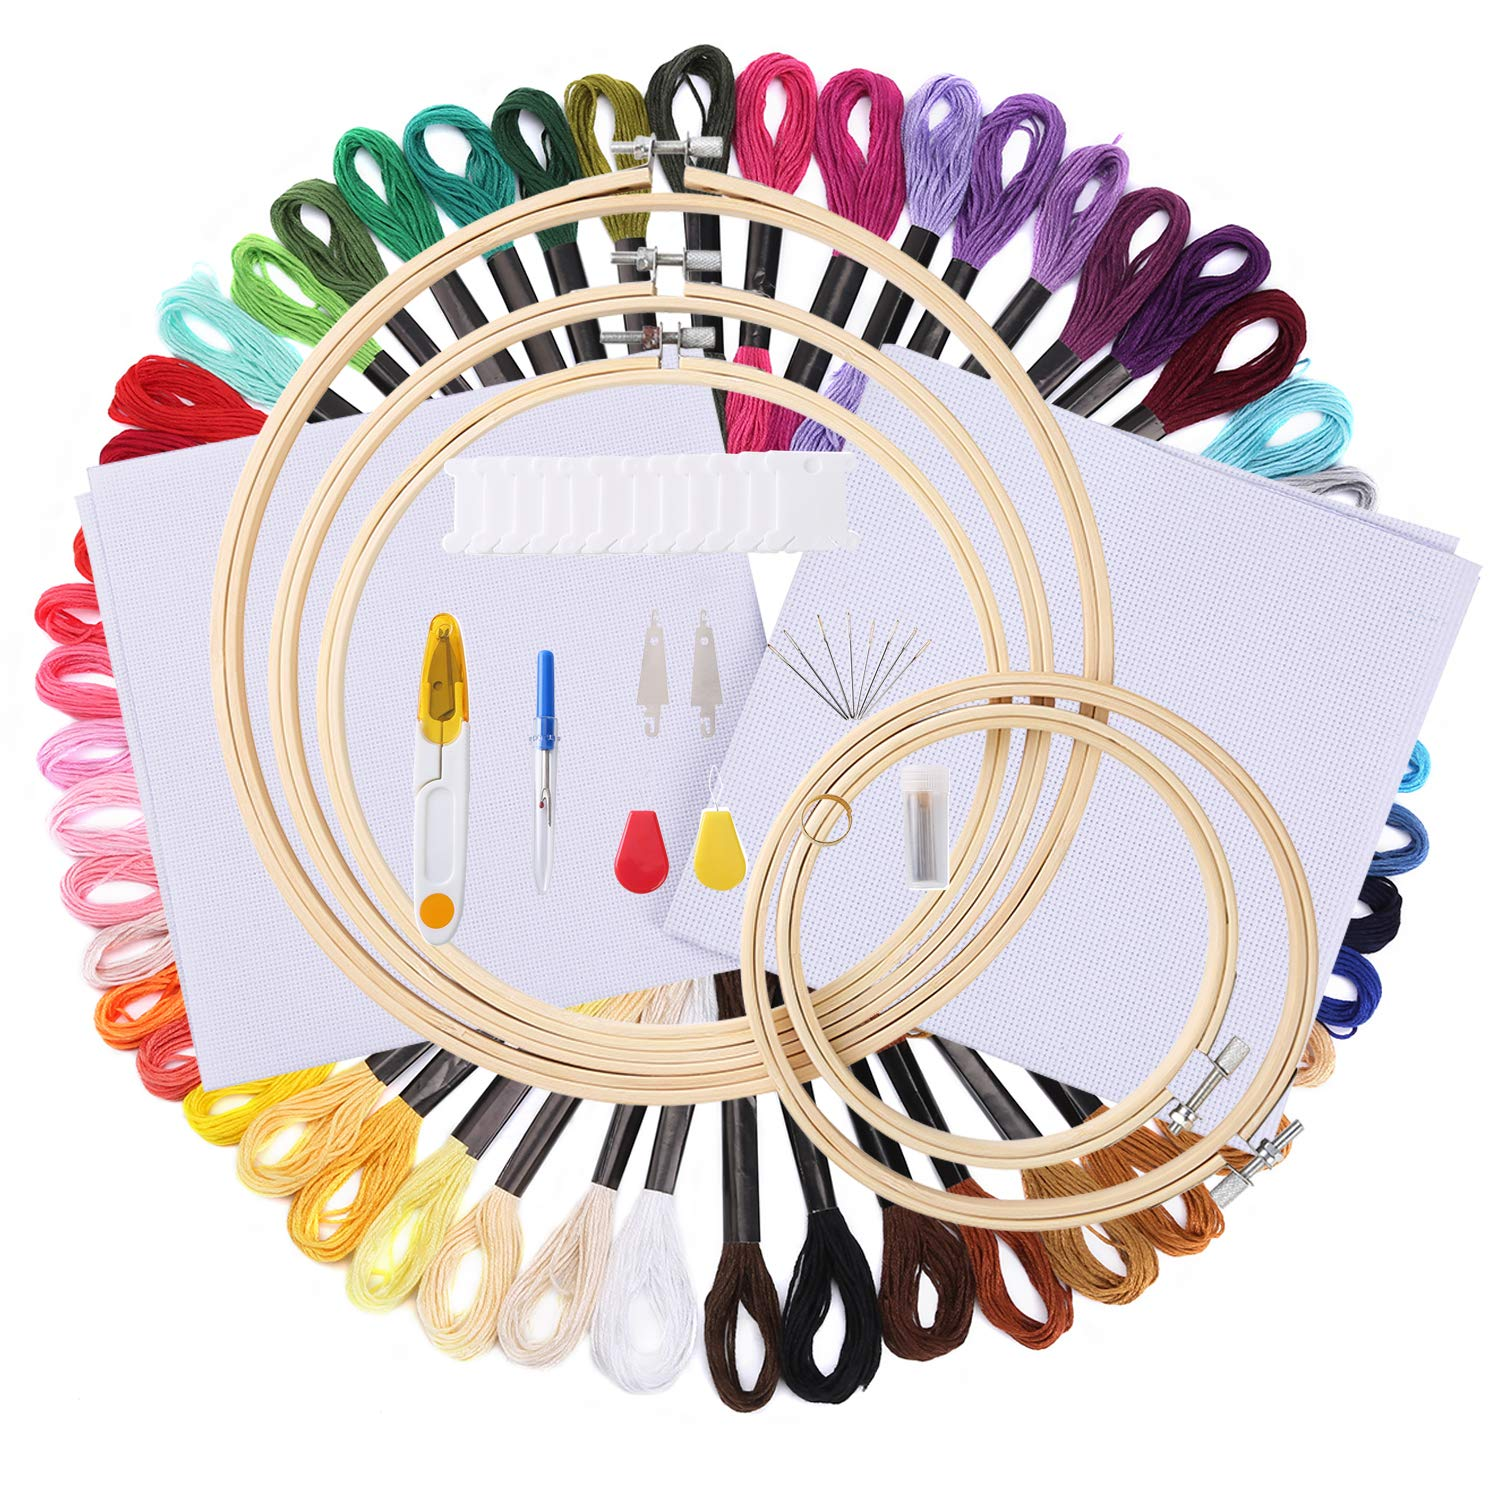 103 pcs Full Range of Embroidery Starter Kit for Beginners -50 Color Threads, 5 Piece Bamboo Embroidery Hoops,30 Piece Needles,12 Piece Floss Bobbins and More Cross Stitch Tool Kit Rtudan